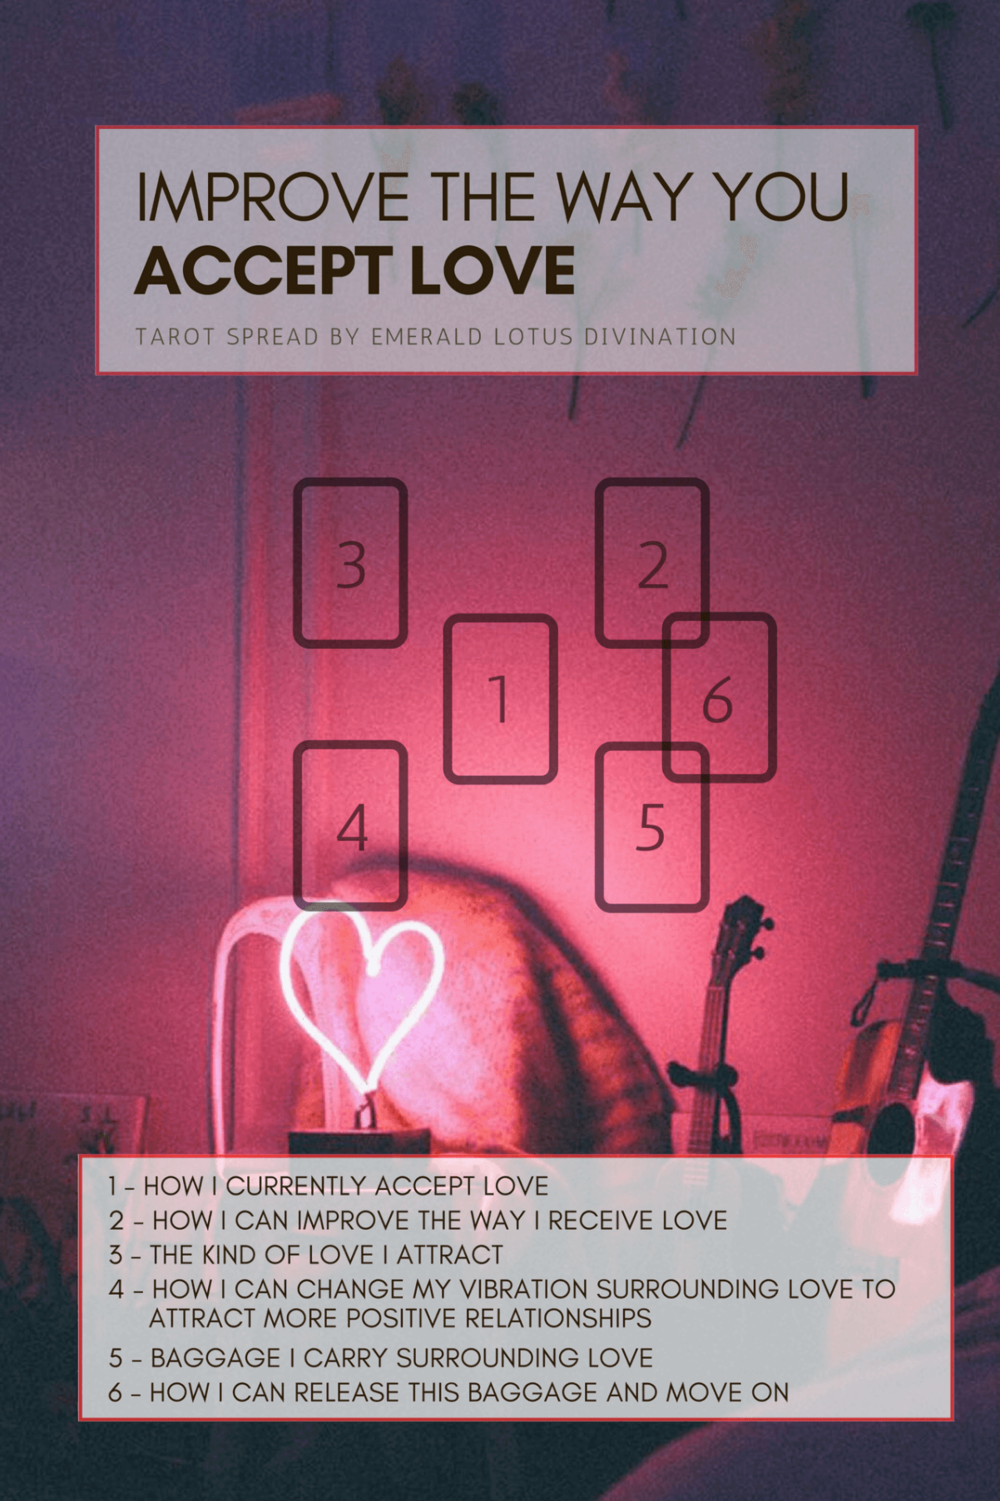 Improve the Way You Accept Love - I am a firm believer that the vibration we emit (our feelings and emotions) attract what we receive in life. If we're down, sad, depressed – negative responses from the universe will come to us. If we're positive, happy, inspired – positive responses from the universe will come to us. Same goes for love and relationships. We need to be able to meet the relationship we desire vibrationally – how will a healthy relationship appear if we aren't taking care of ourselves?Want to learn how to accept love in a healthy, meaningful and positive way? Book a Reading!